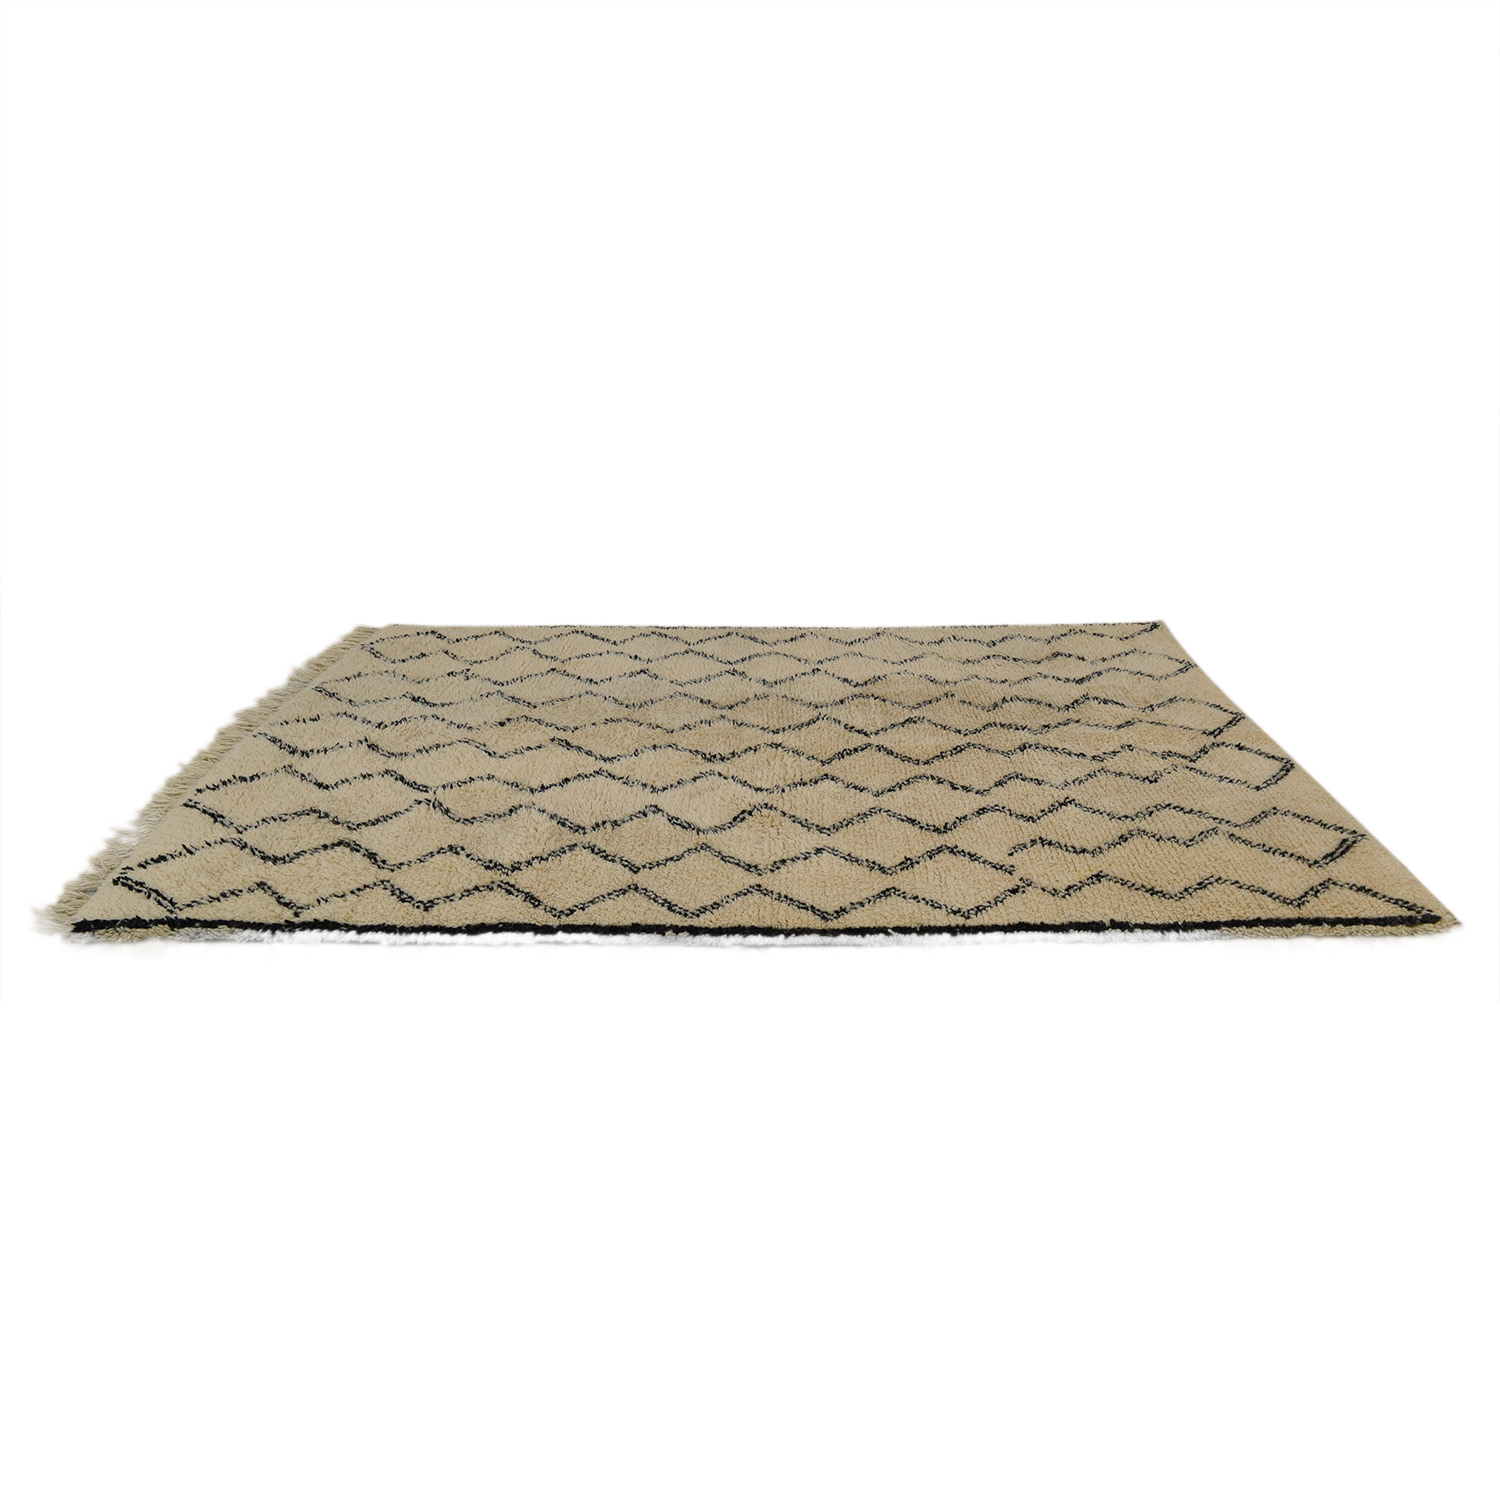 Ben Ourian Ben Ourian Vintage Beige and Black Moroccan Rug for sale